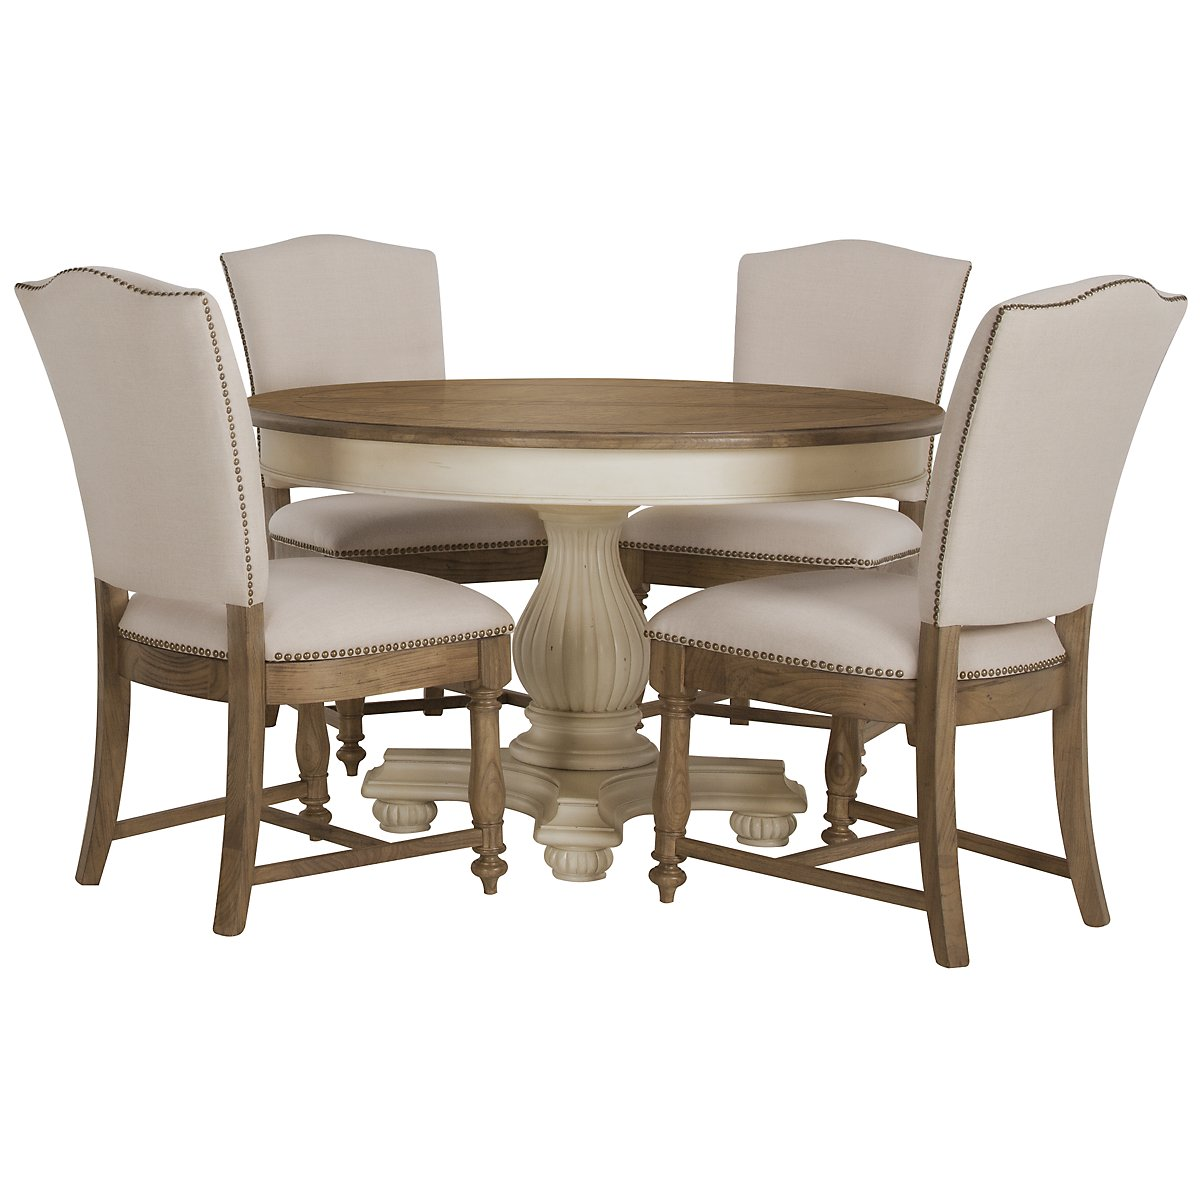 Two Tone Dining Room Furniture